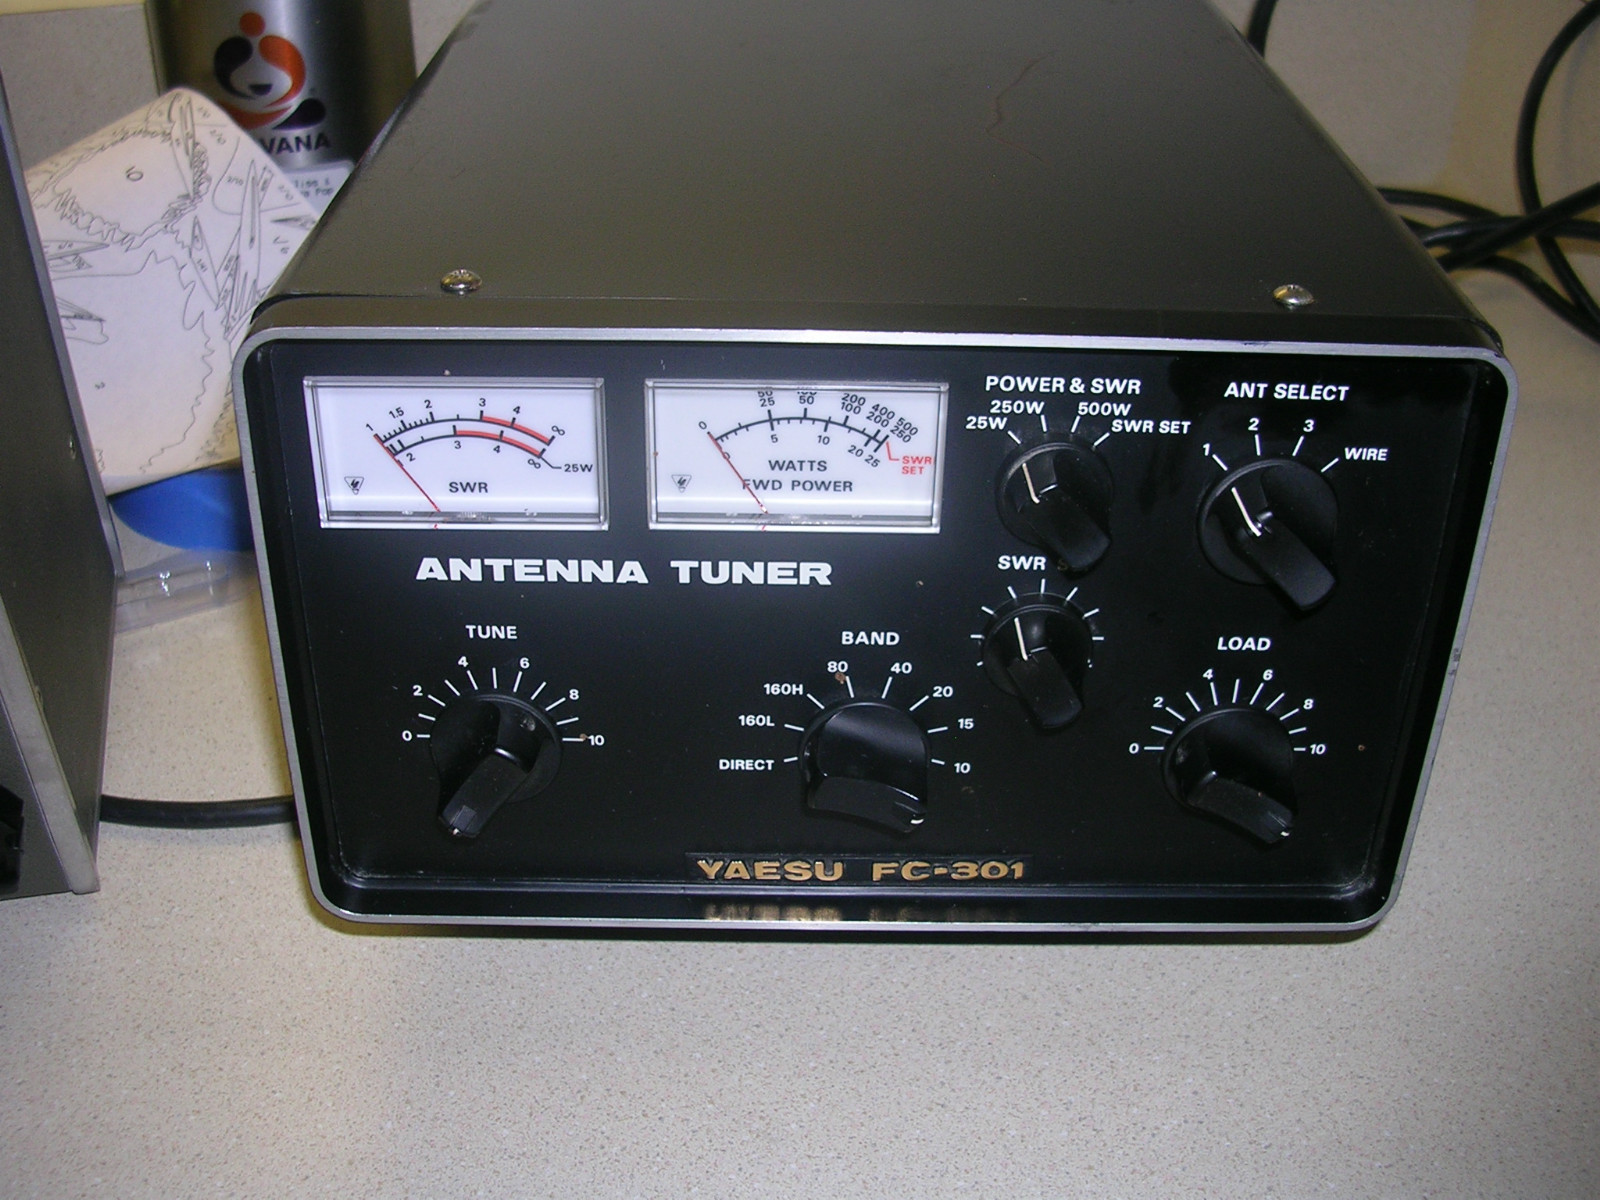 yaesu fc 301 antenna tuner the old tube radio archives. Black Bedroom Furniture Sets. Home Design Ideas